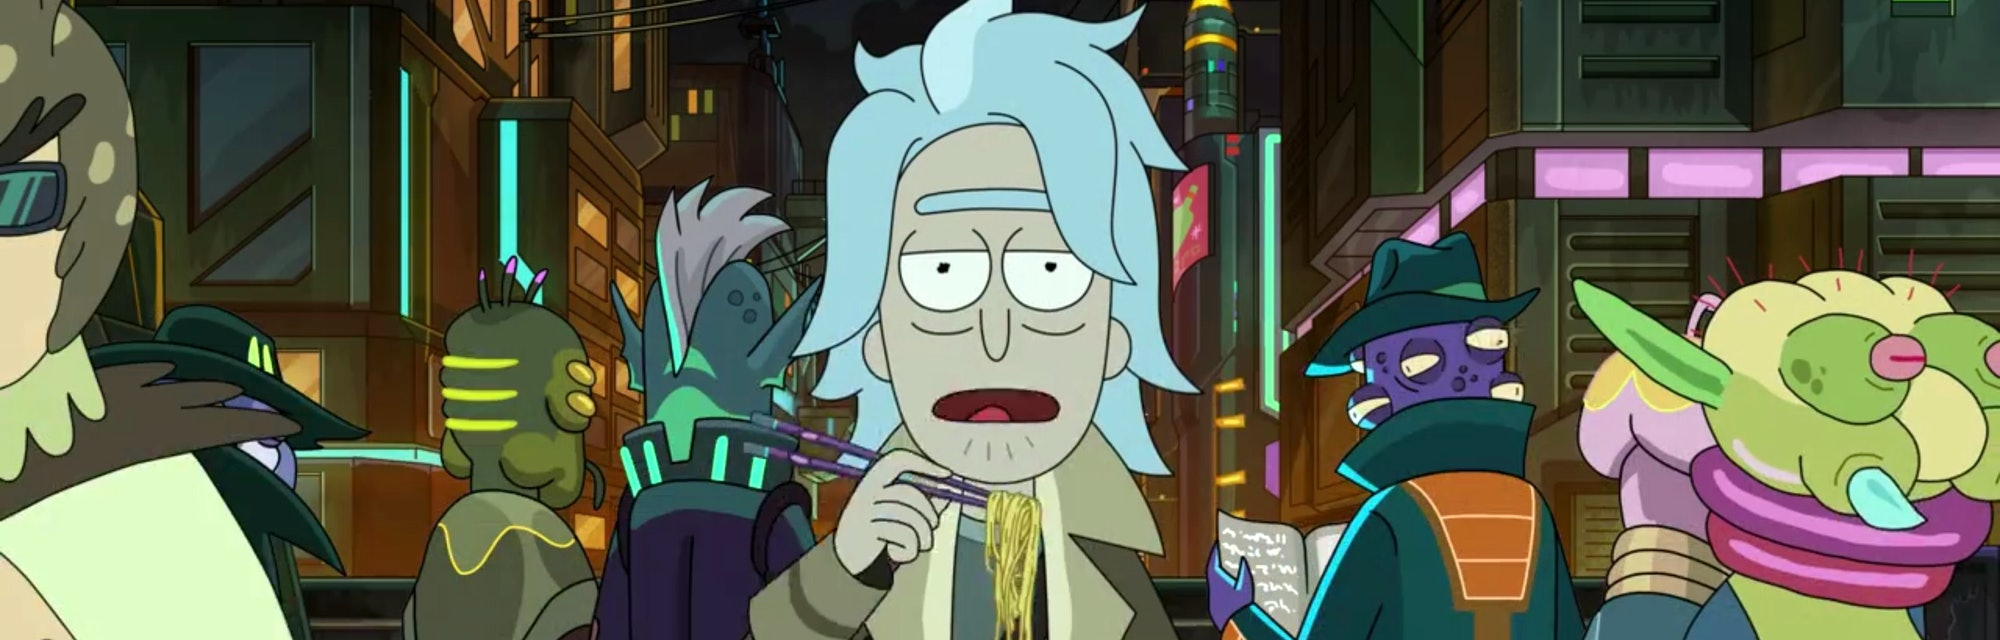 rick and morty season 5 finale blade runner